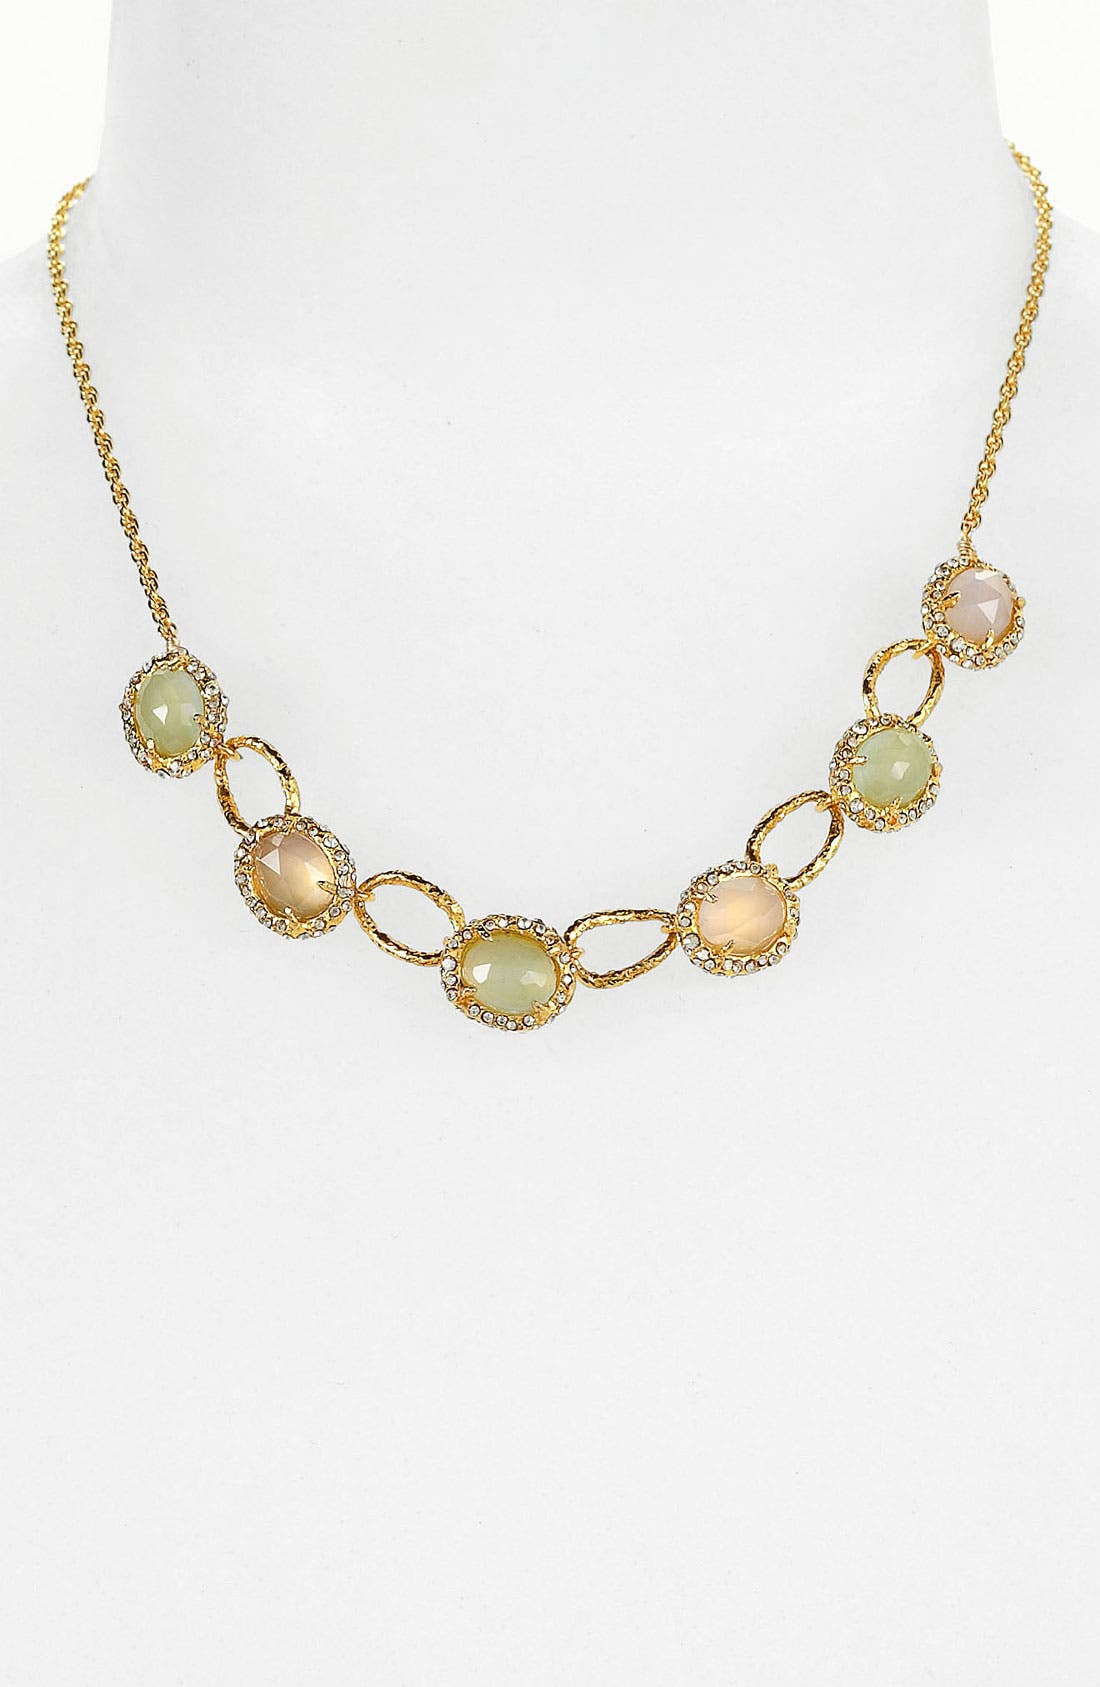 Alternate Image 1 Selected - Alexis Bittar 'Elements - Siyabona' Frontal Necklace